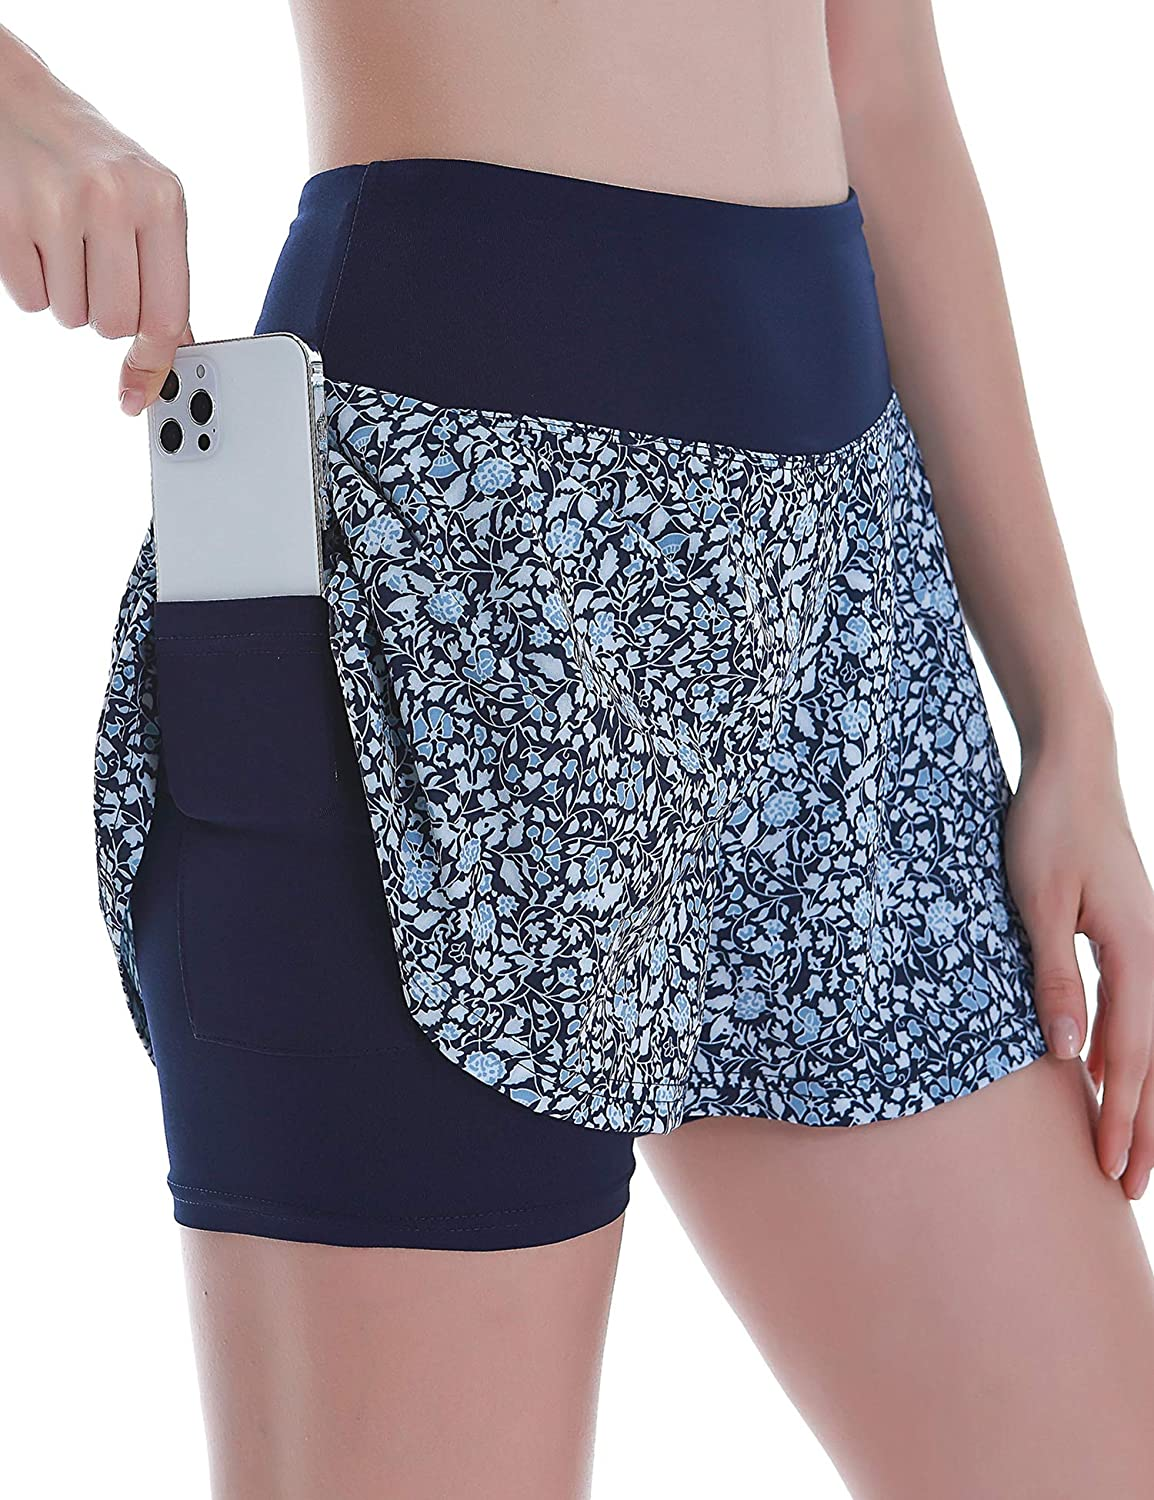 COOrun Womens 2 in 1 Running Shorts Quick-Dry Workout Yoga Sports Shorts with Phone Pockets